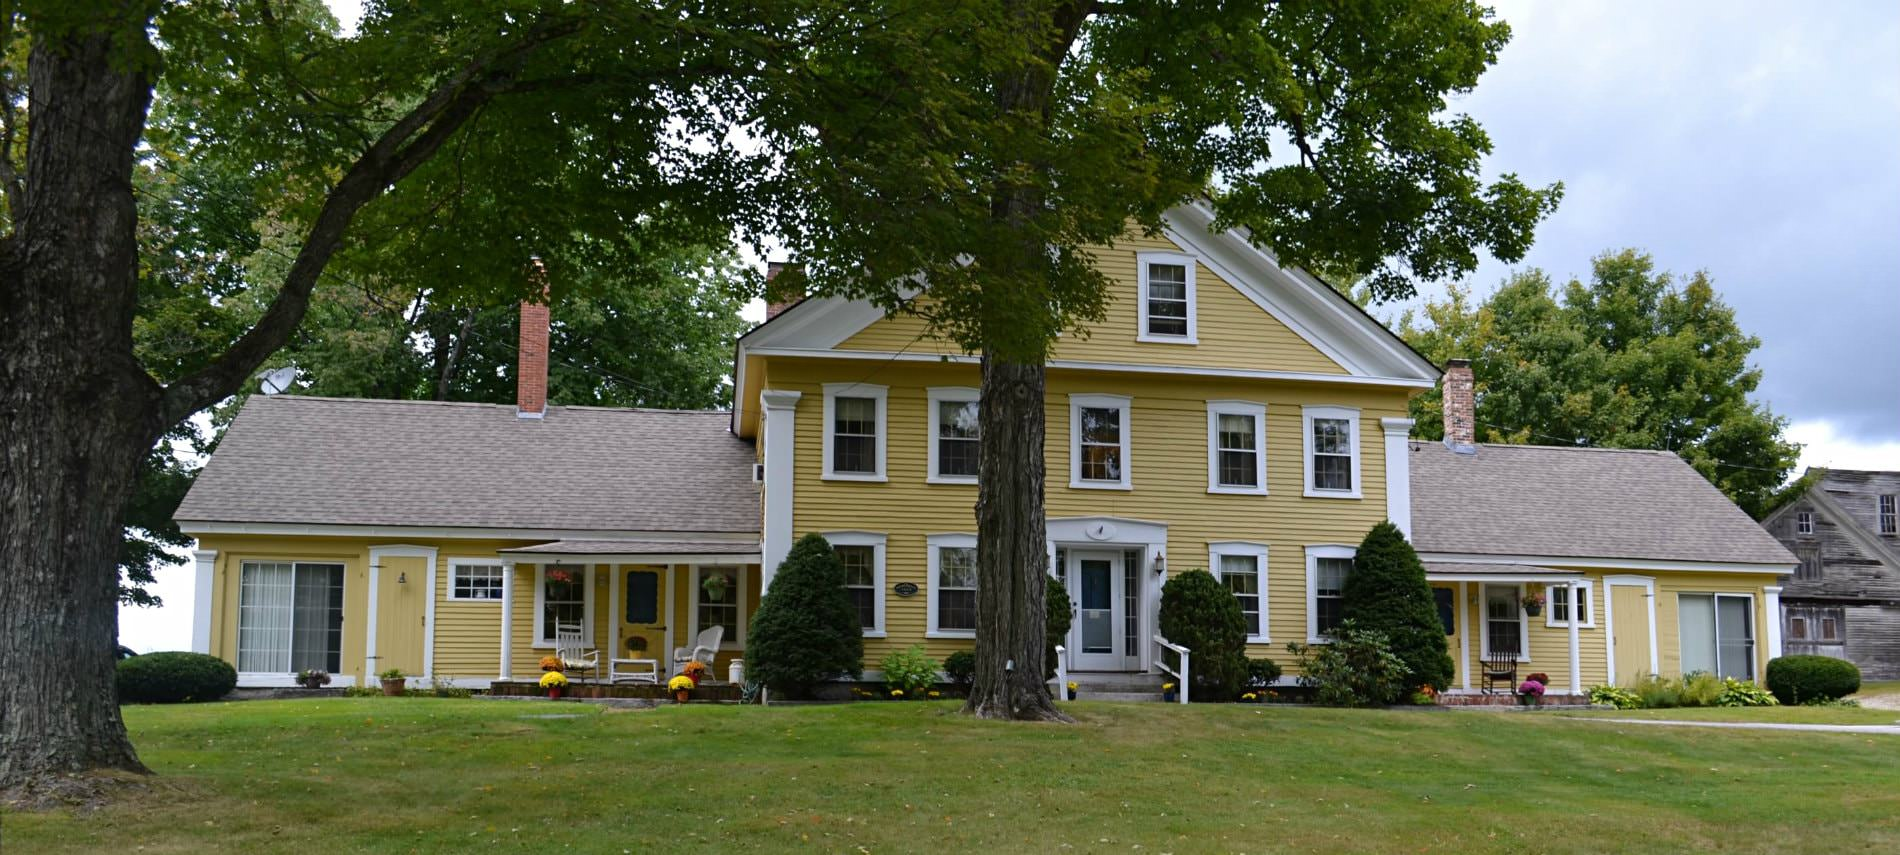 Large yellow sided Benjamin Prescott Inn with green lawn and tall green trees